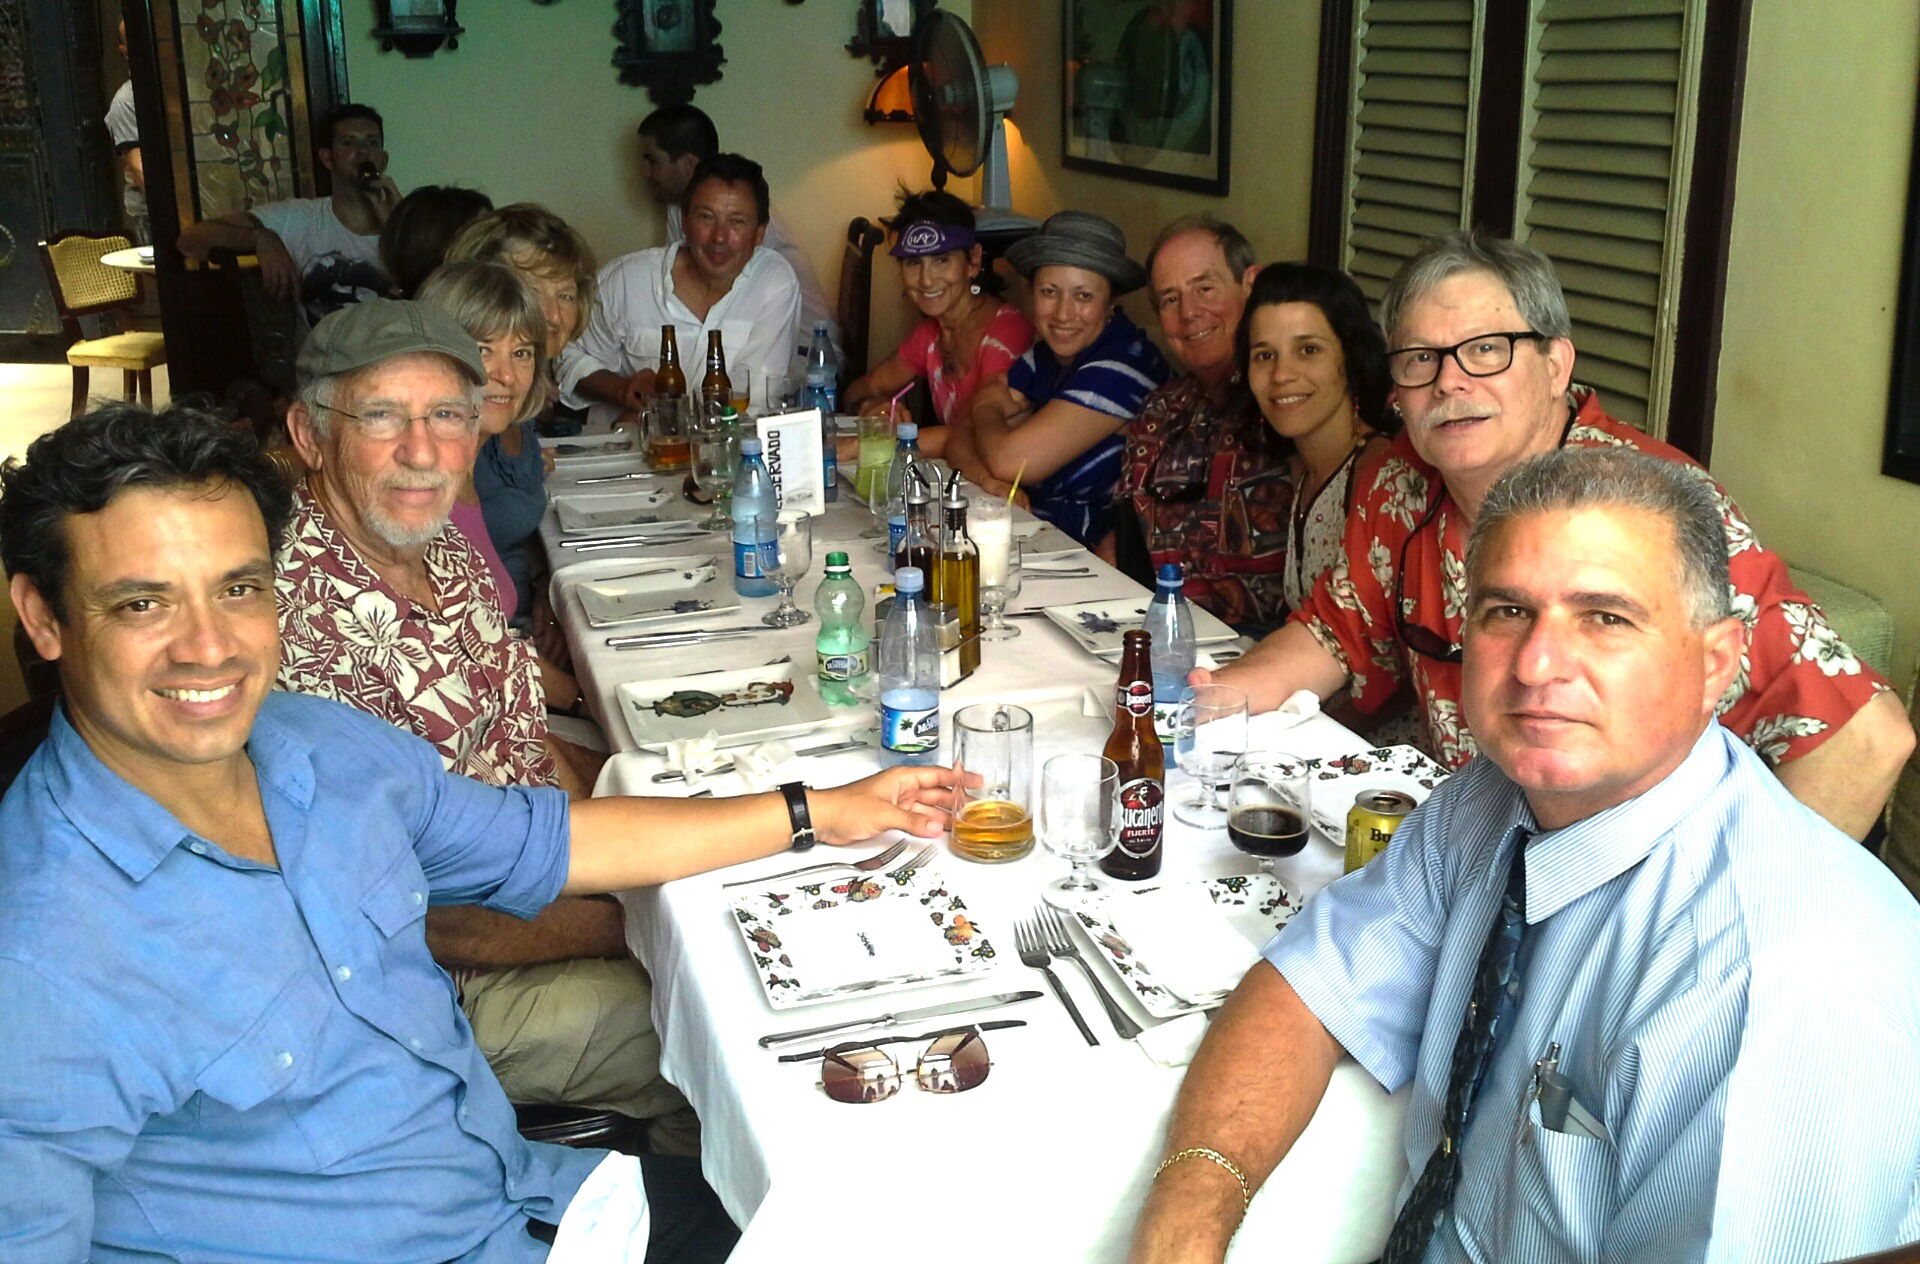 Cuba rhythm and views tour trip highlights for Group lunch